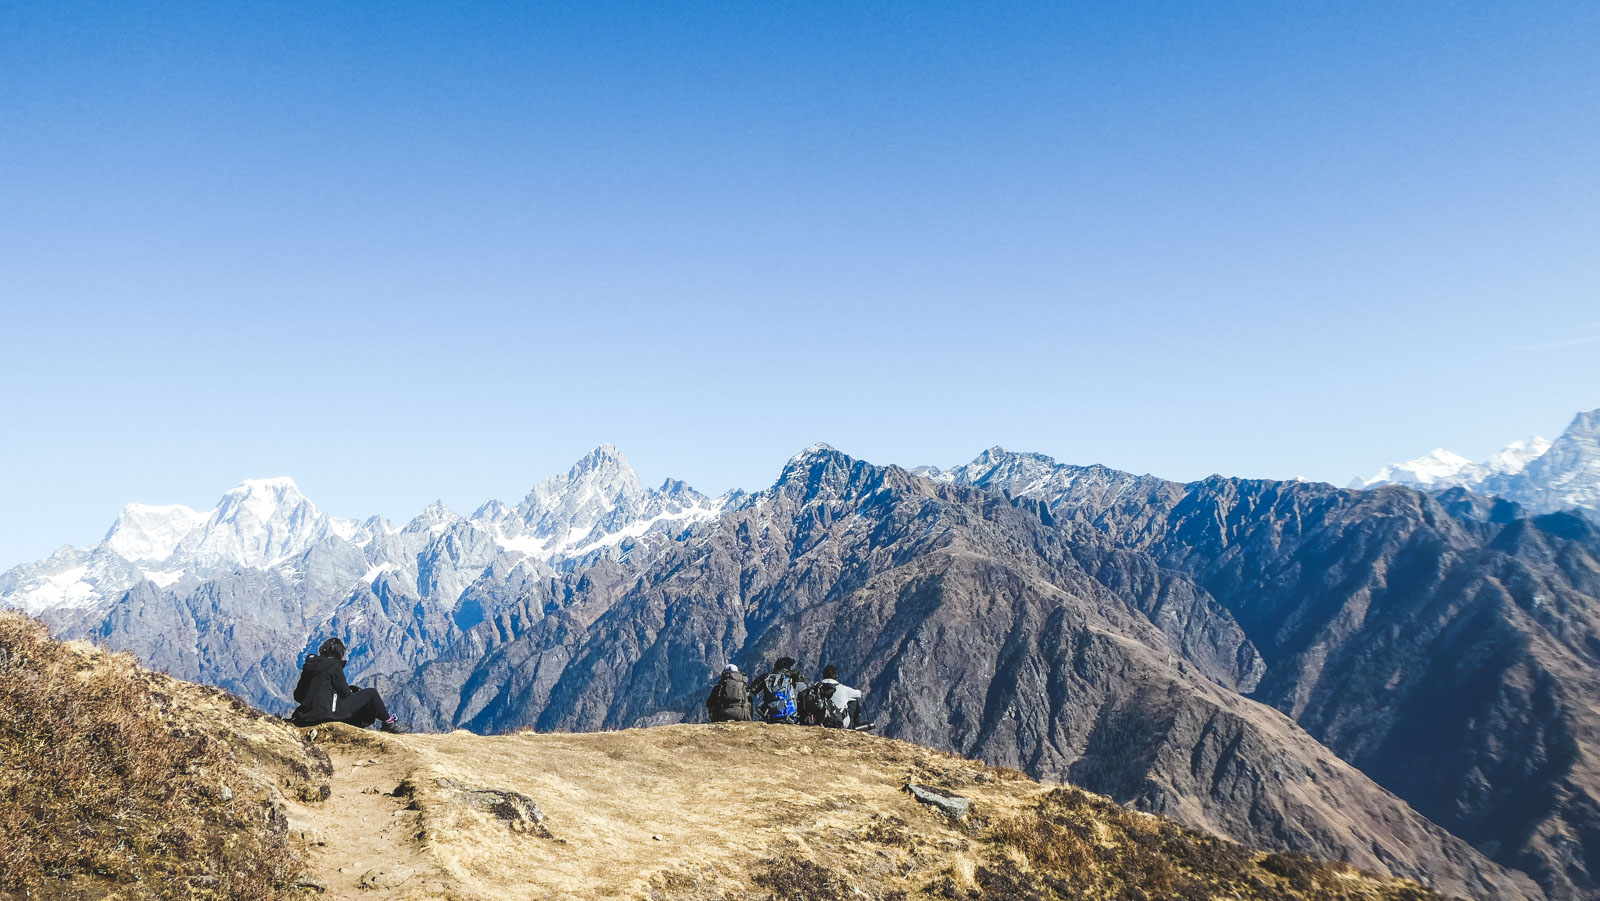 Nutrition and fitness tips for trekking at attitude. Four people sit on top of a mountain in the Himalayas